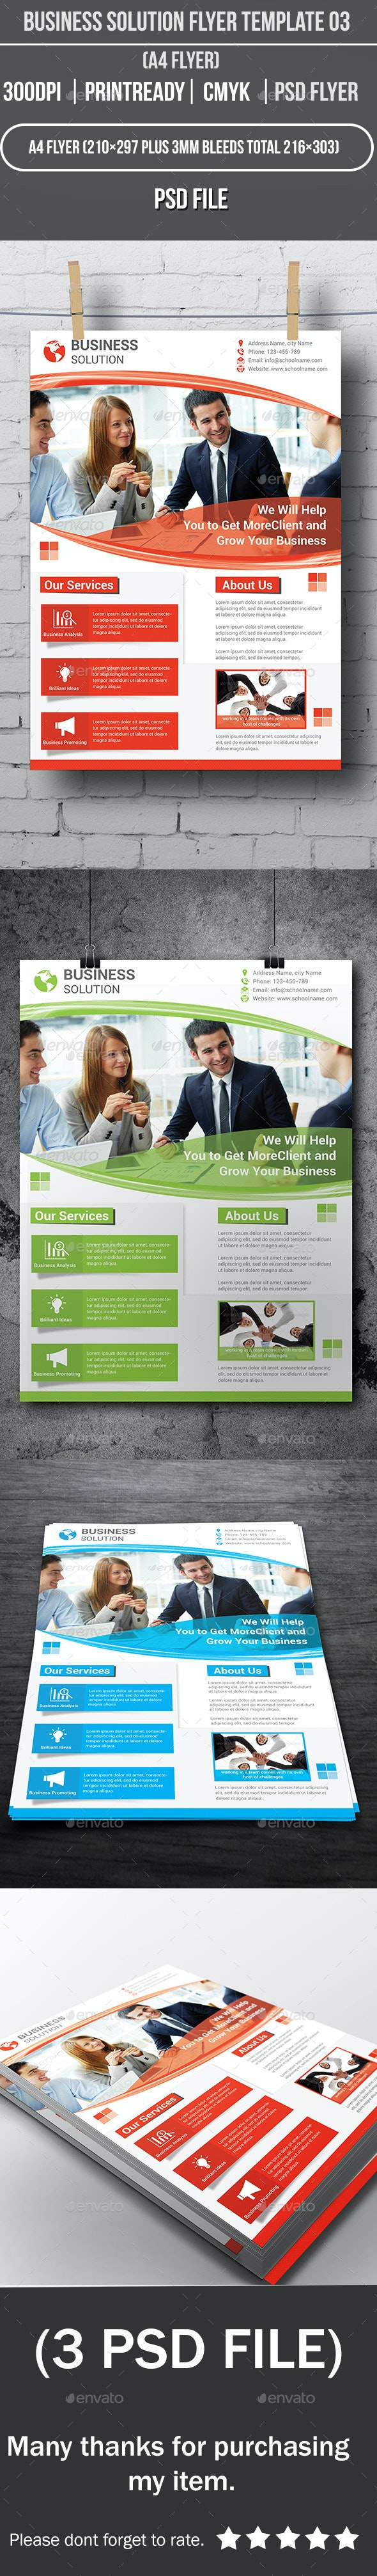 Business Solution Flyer Template 03 - Corporate Flyers